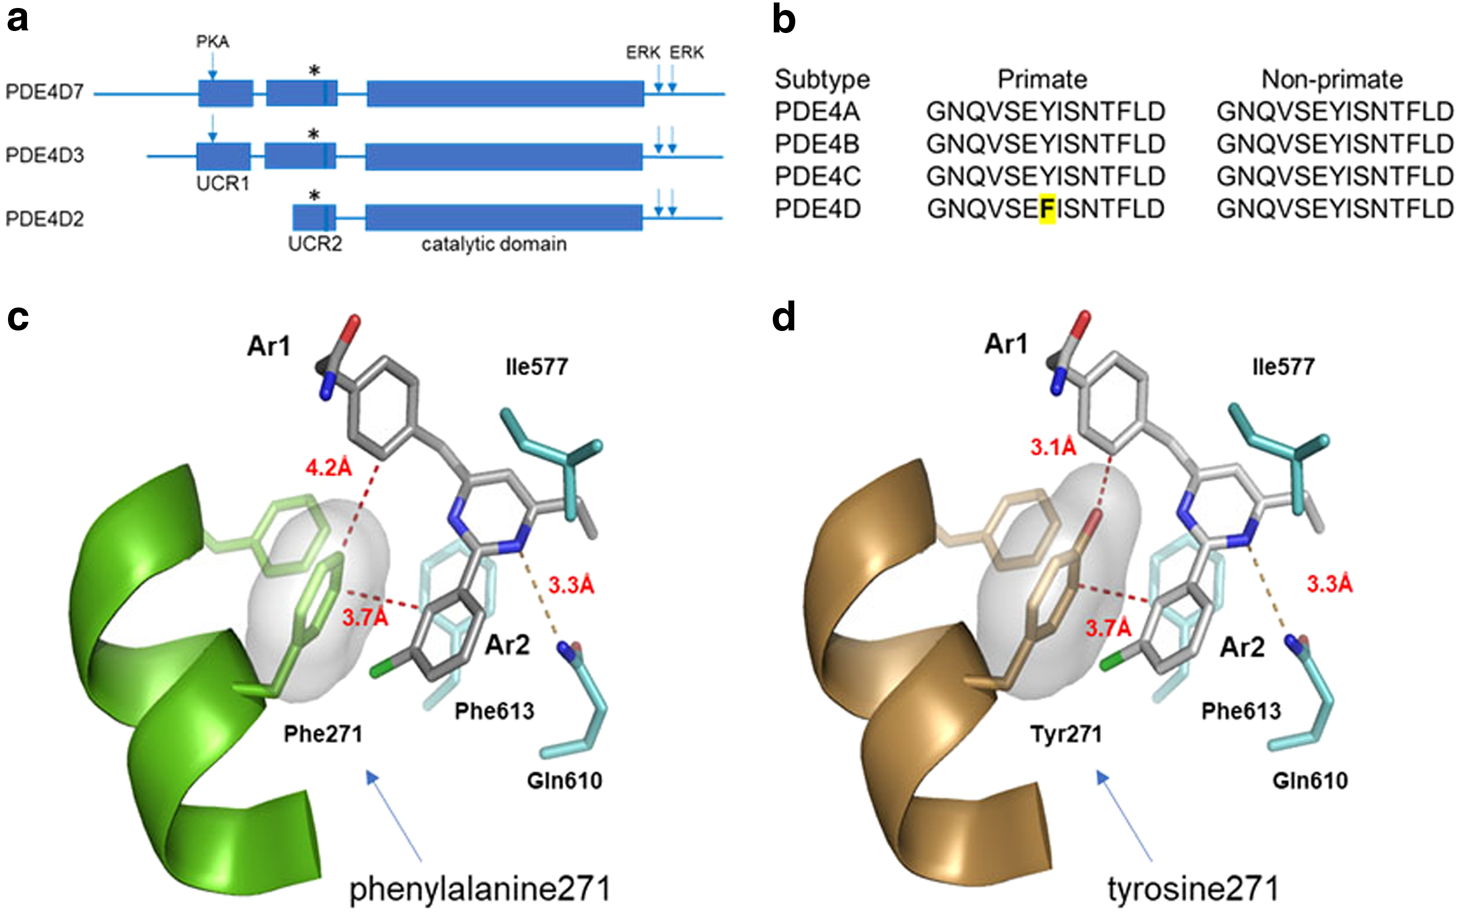 Memory enhancing effects of bpn14770 an allosteric inhibitor of memory enhancing effects of bpn14770 an allosteric inhibitor of phosphodiesterase 4d in wild type and humanized mice neuropsychopharmacology malvernweather Image collections